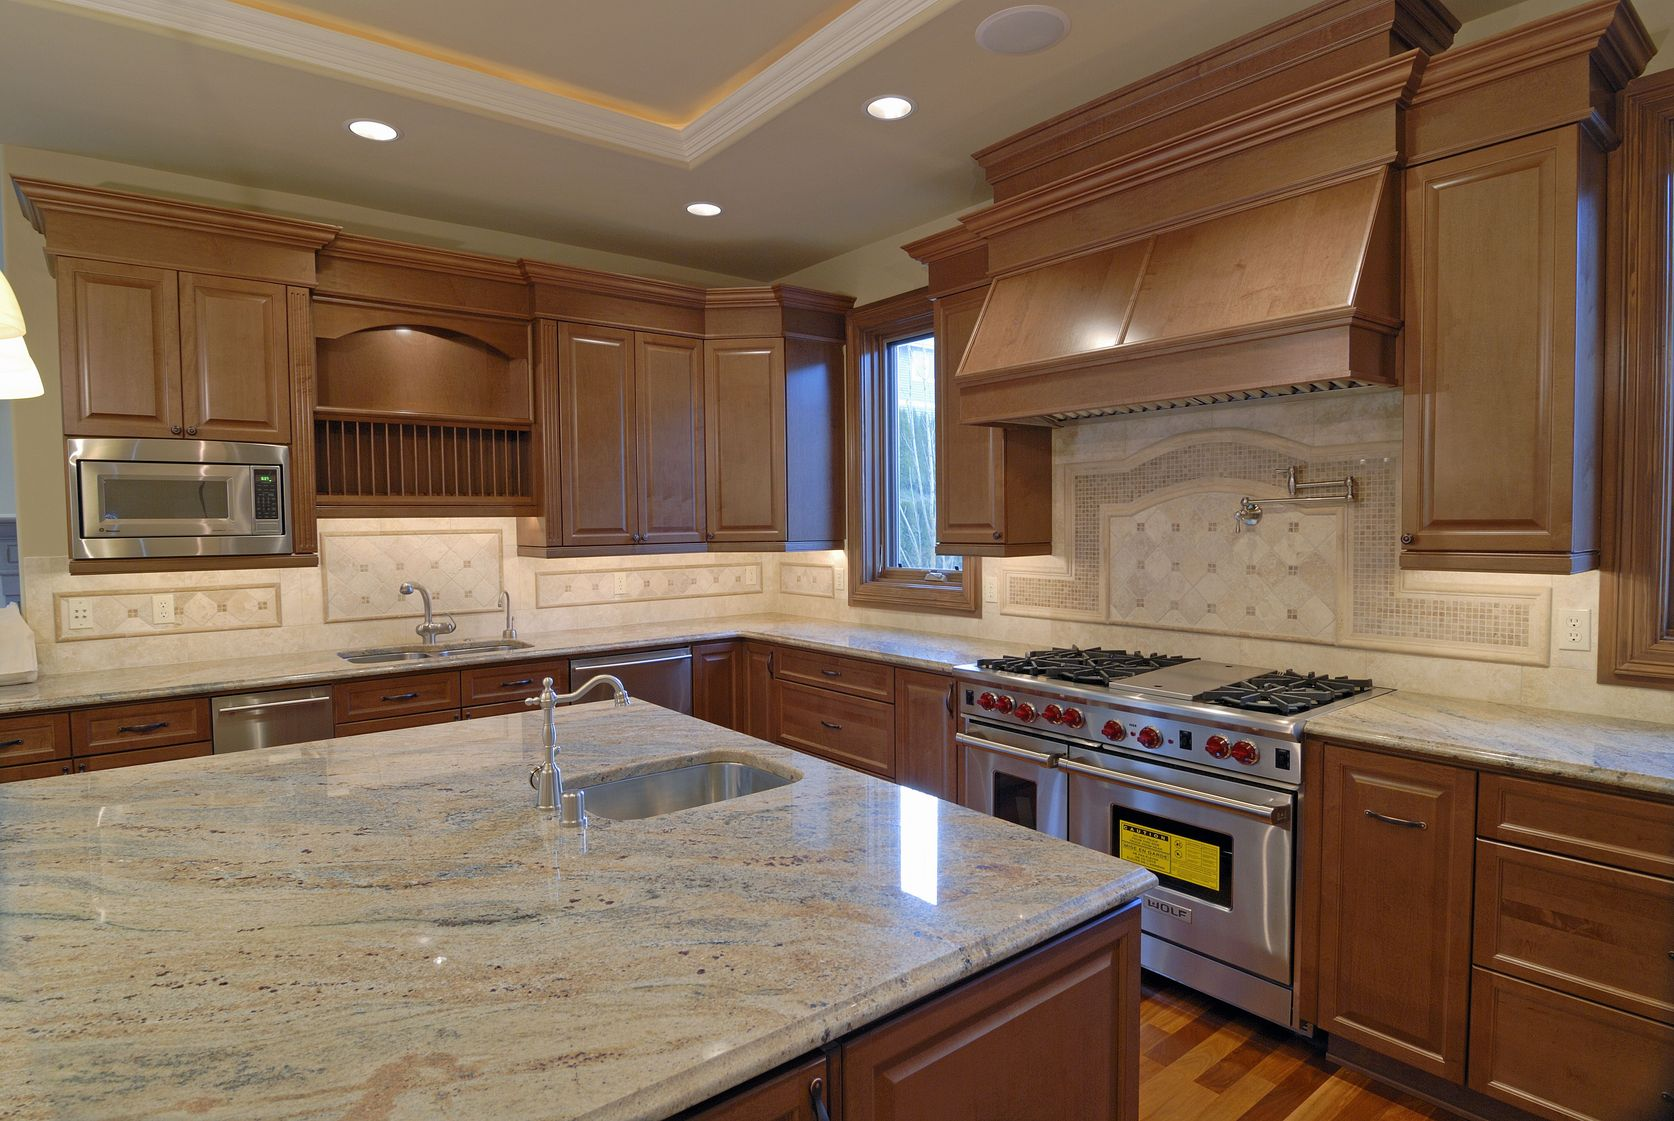 Kitchen remodeling tips how to design a kitchen with for How to remodel a kitchen